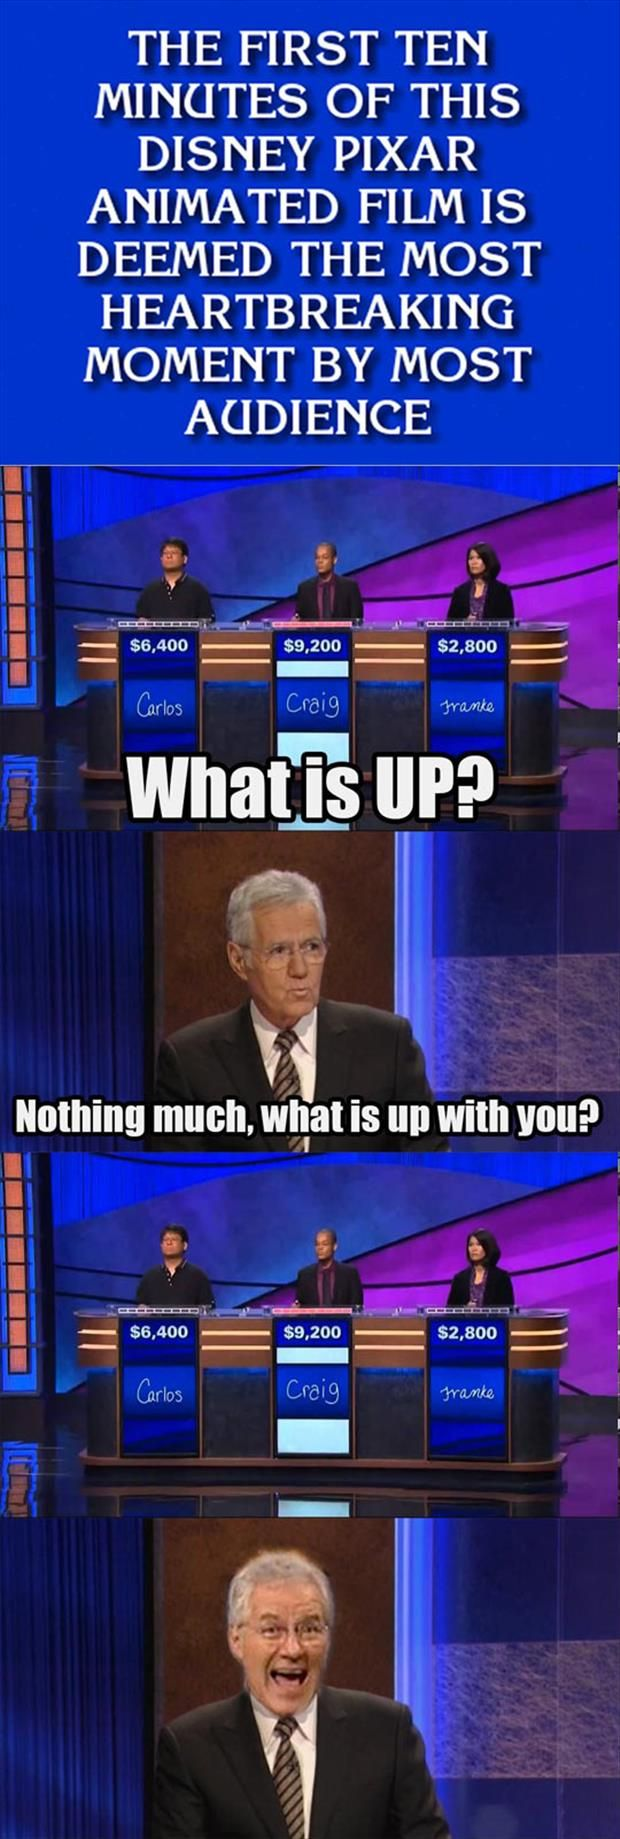 Funny Pictures Of The Day - 93 Pics: Face, Giggle, Funny Stuff, Jeopardy Humor, Funnies, Alex O'Loughlin, Alex Trebek